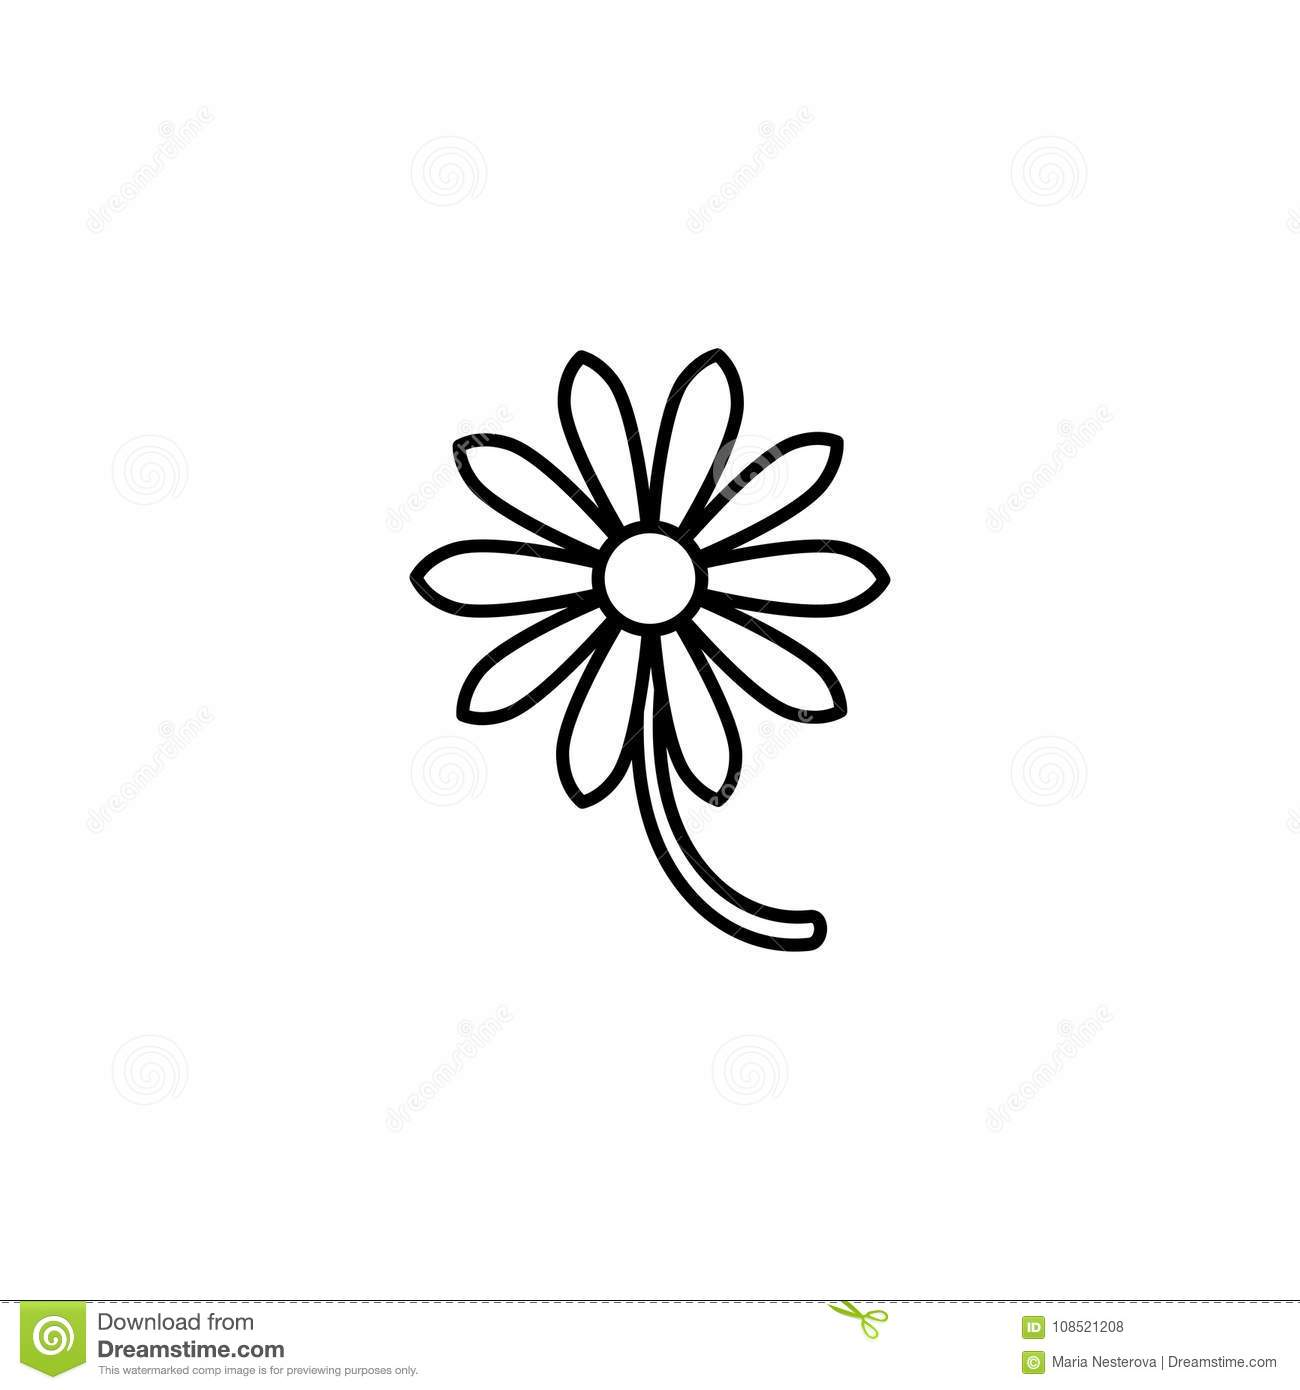 Outline Flat Icon Of Daisy Flower With Right Side Stem Isolated On